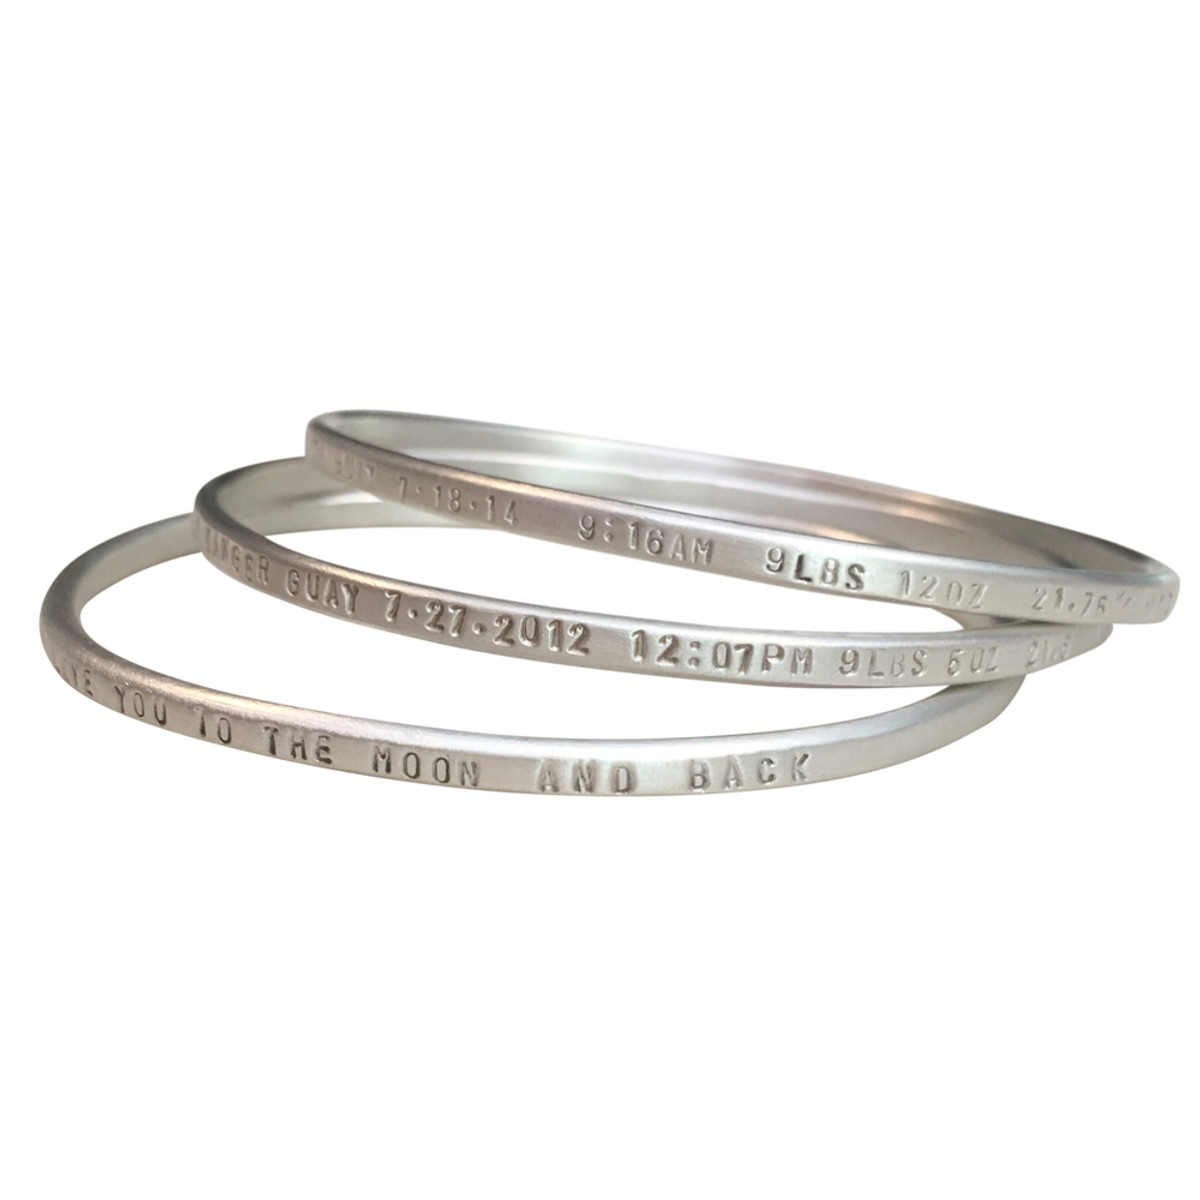 view delicata a diamond thin bangle bangles bracelet